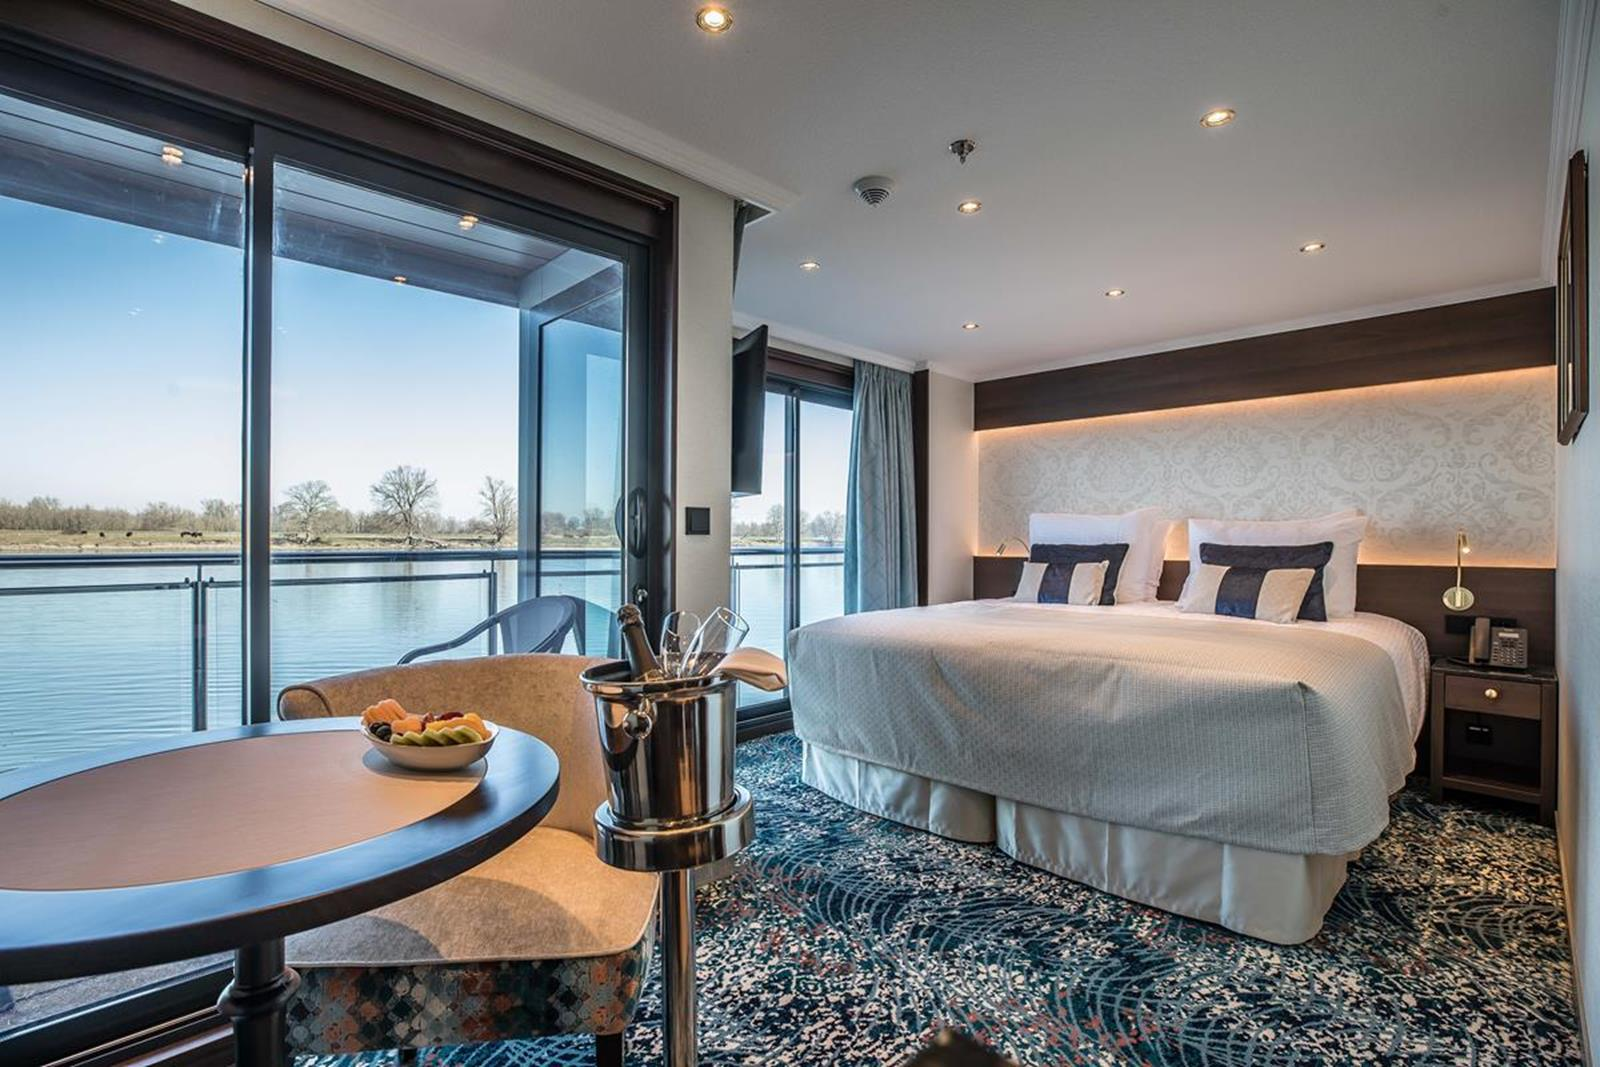 MS George Eliot deluxe balcony suite 1 - Courtesy of Riviera River Cruises